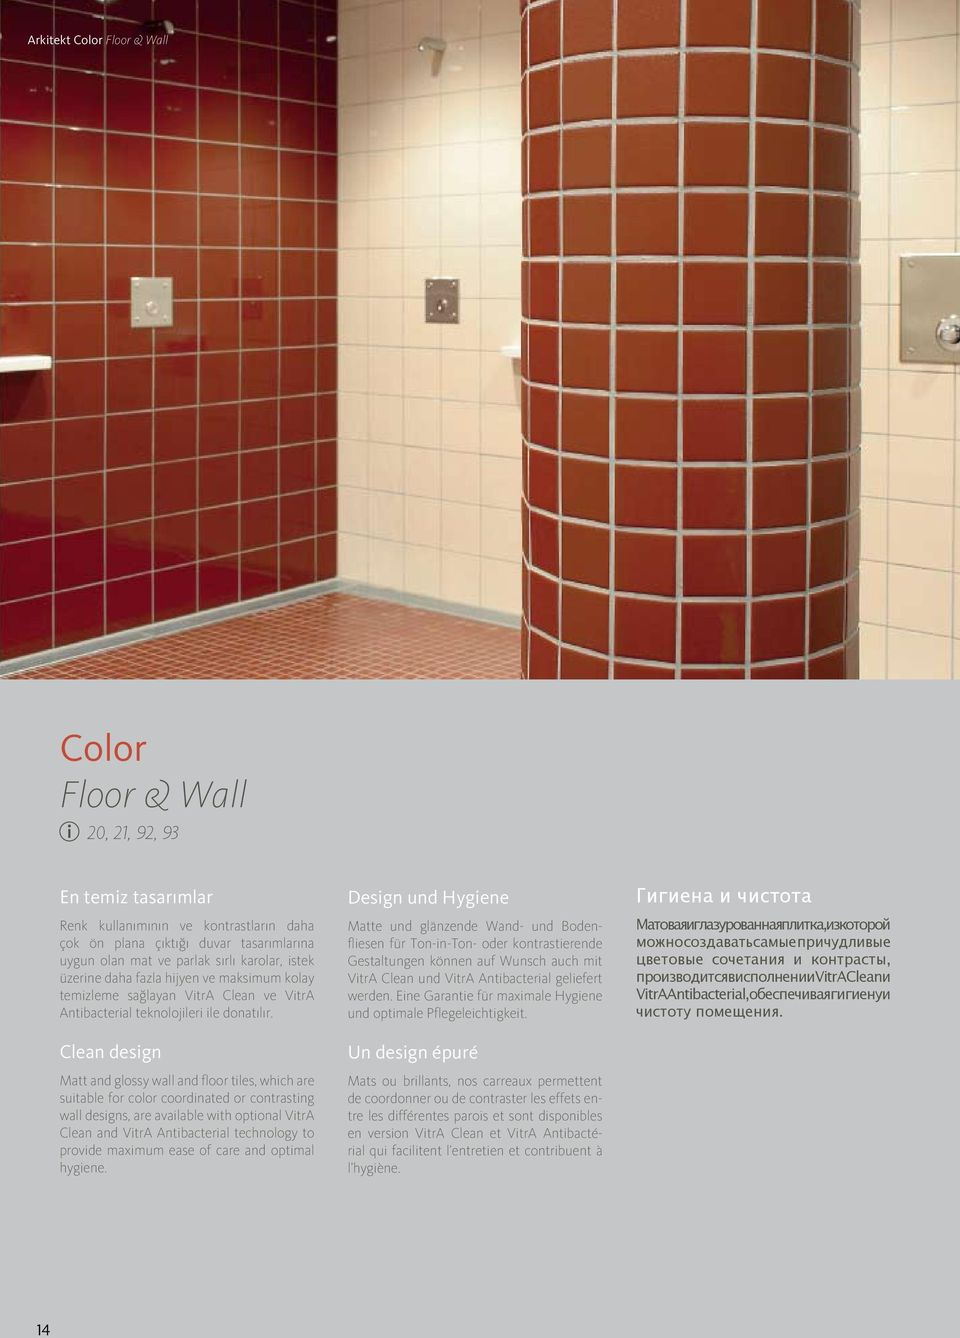 Clean design and glossy wall and floor tiles, which are suitable for color coordinated or contrasting wall designs, are available with optional VitrA Clean and VitrA Antibacterial technology to